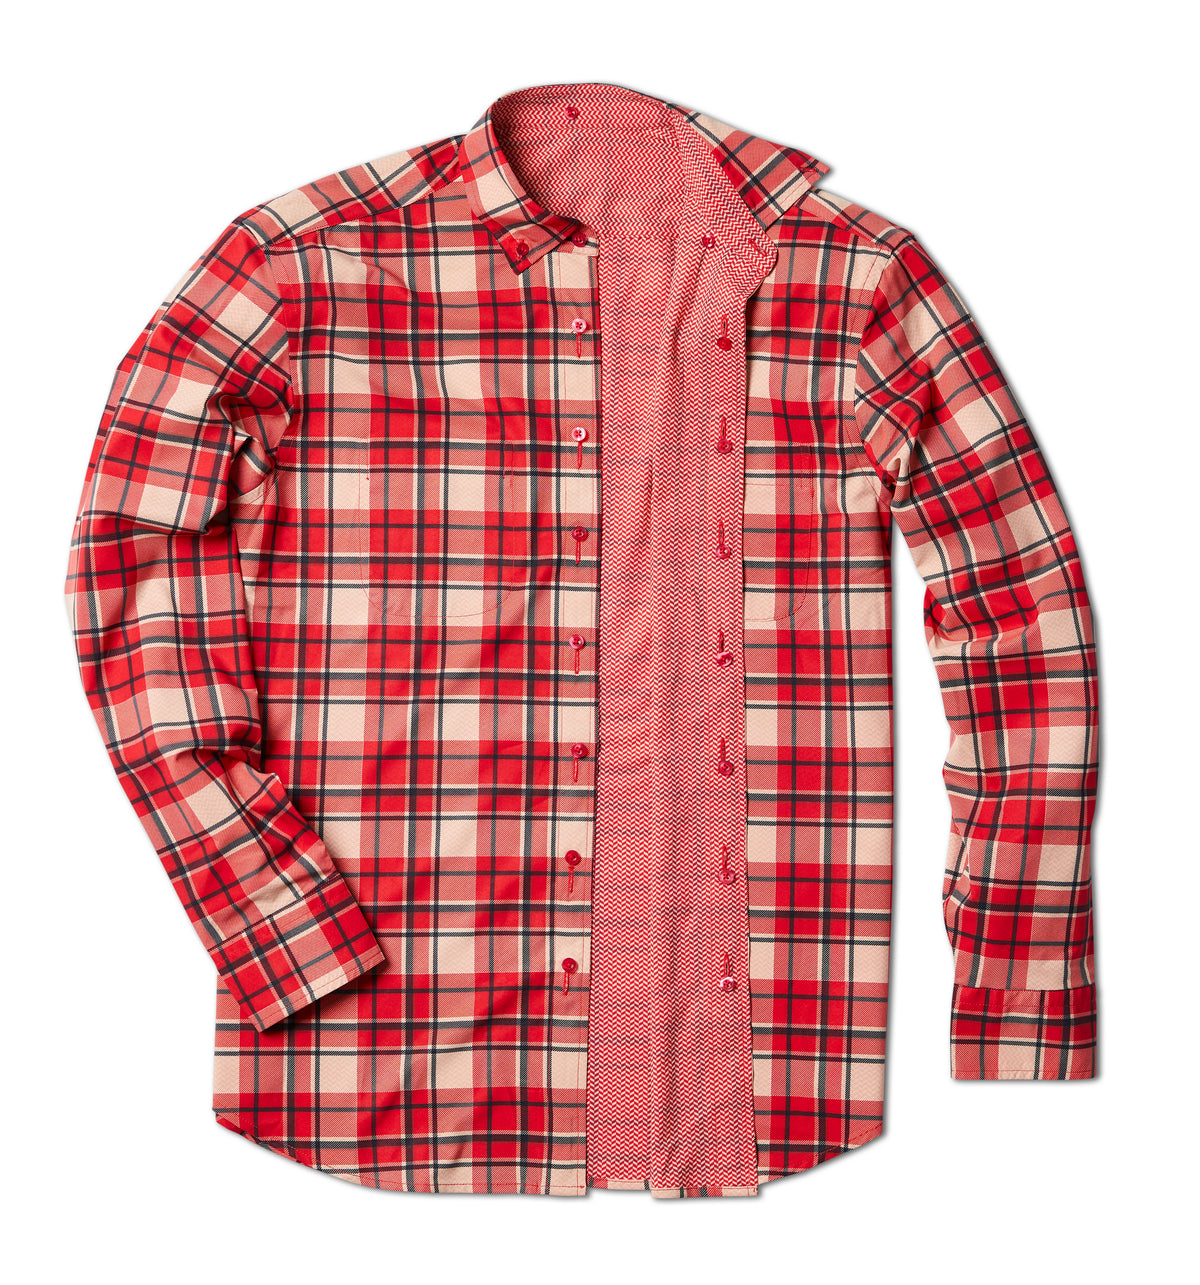 Out of Office Button Down: Red Rocks Plaid